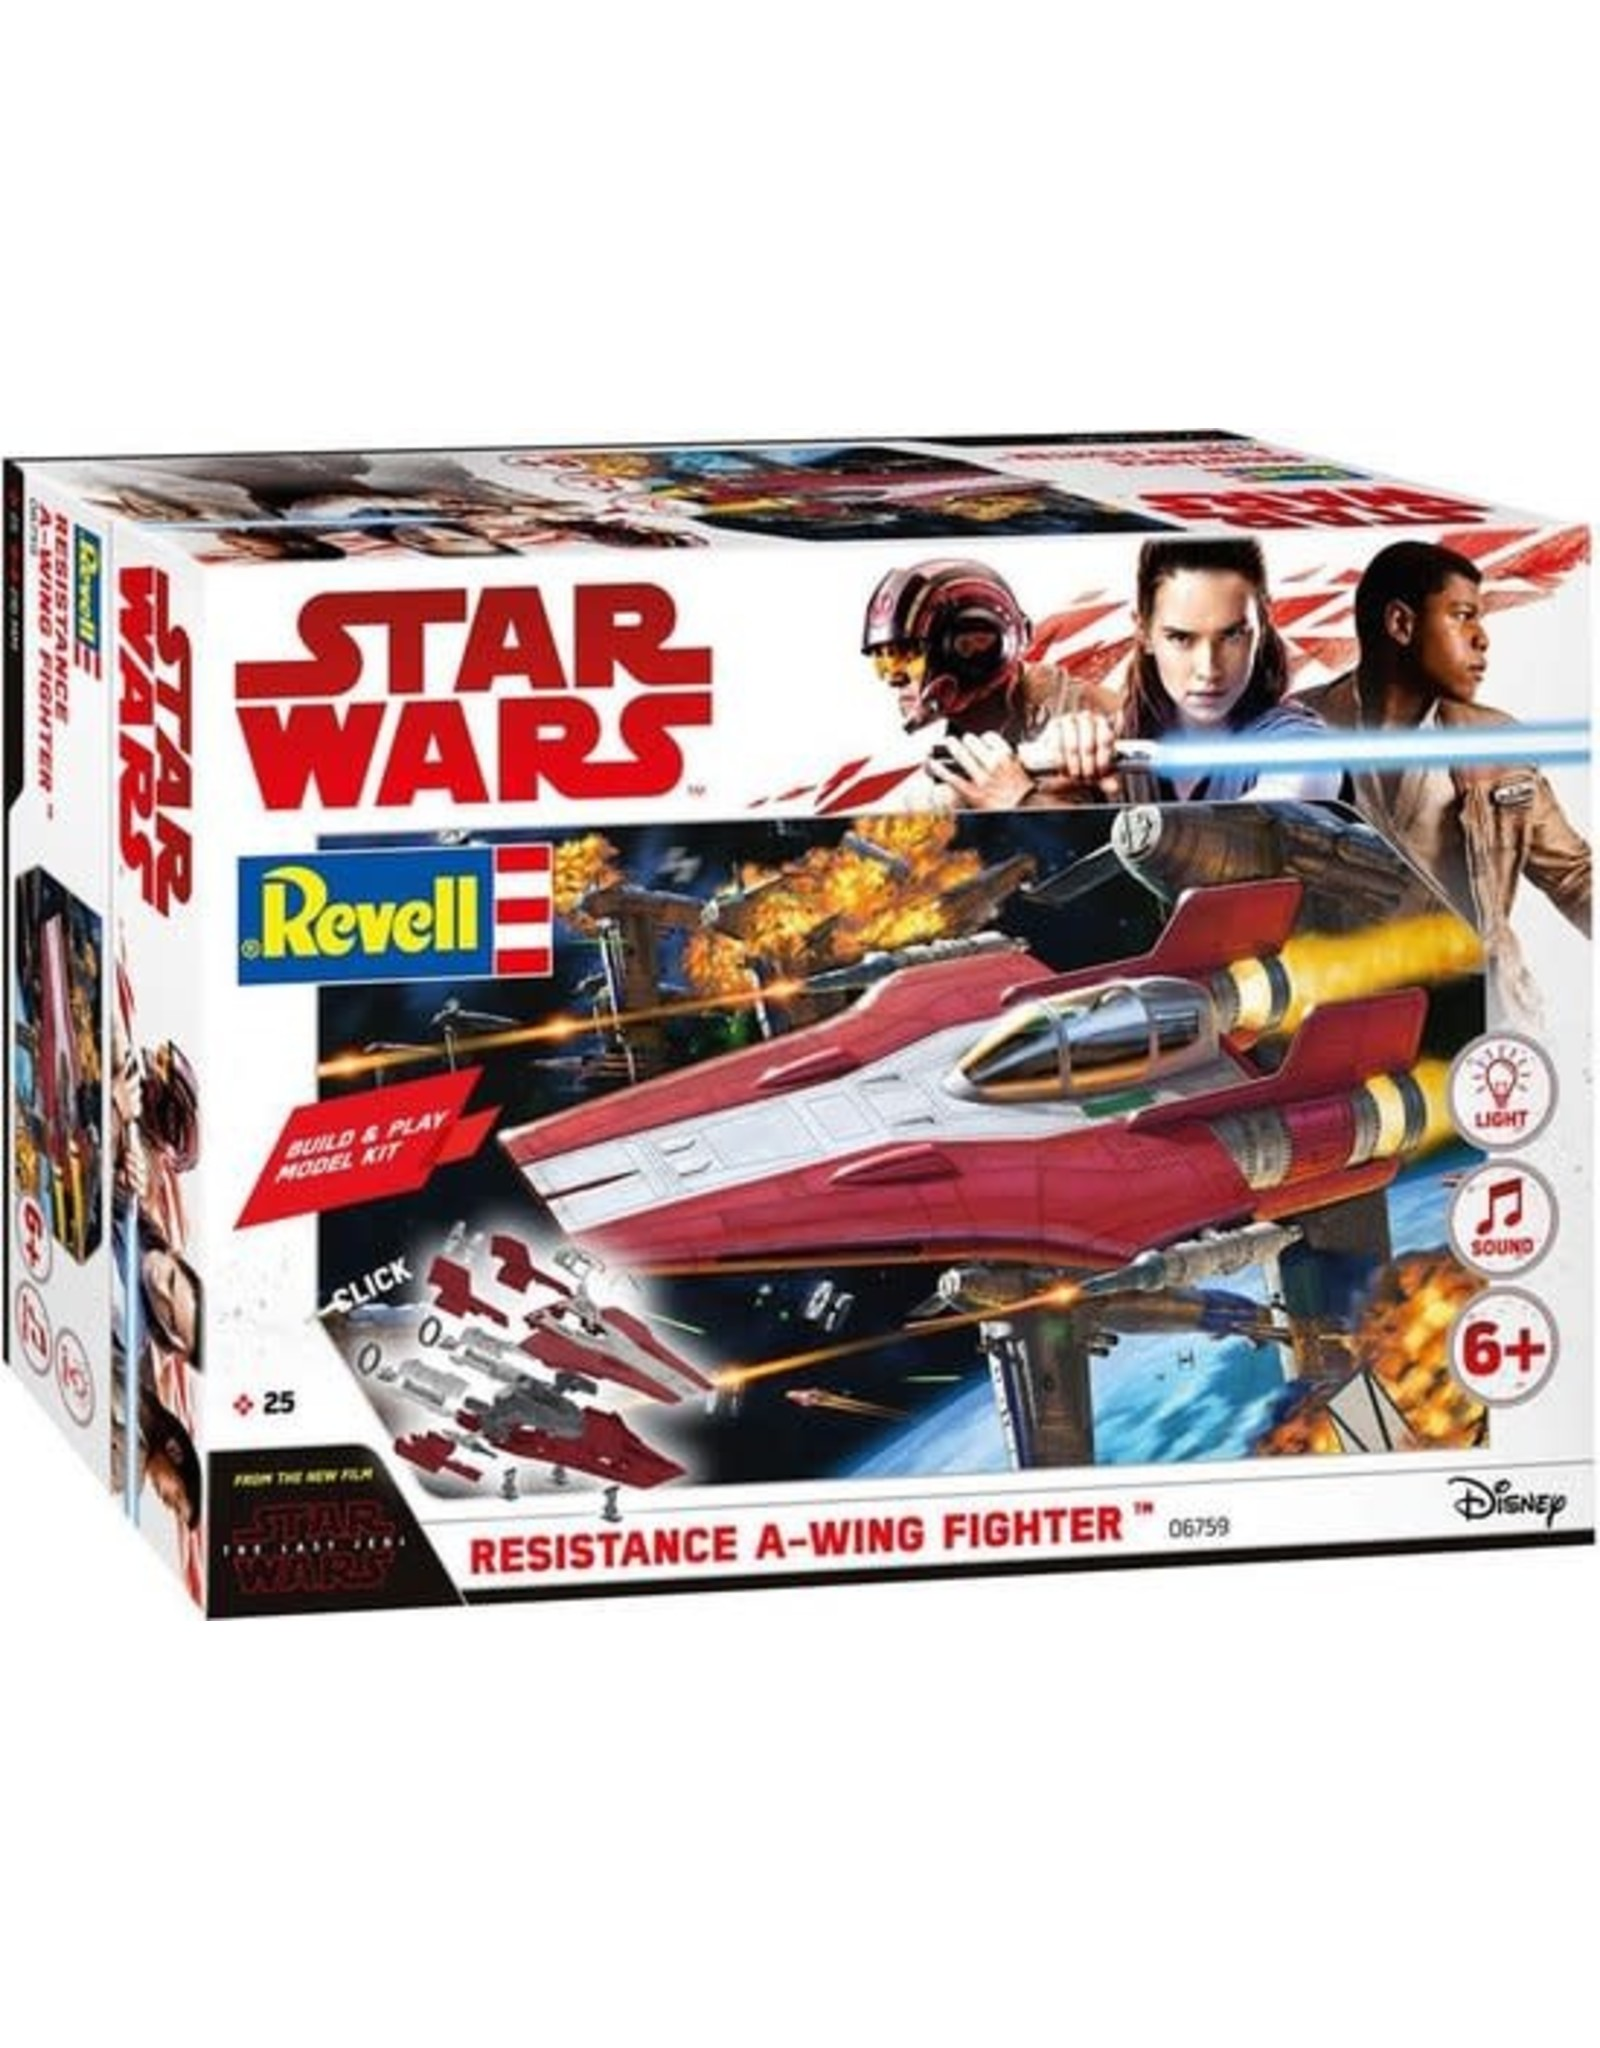 Revell Build & Play Model Kit Resistance A-Wing Fighter